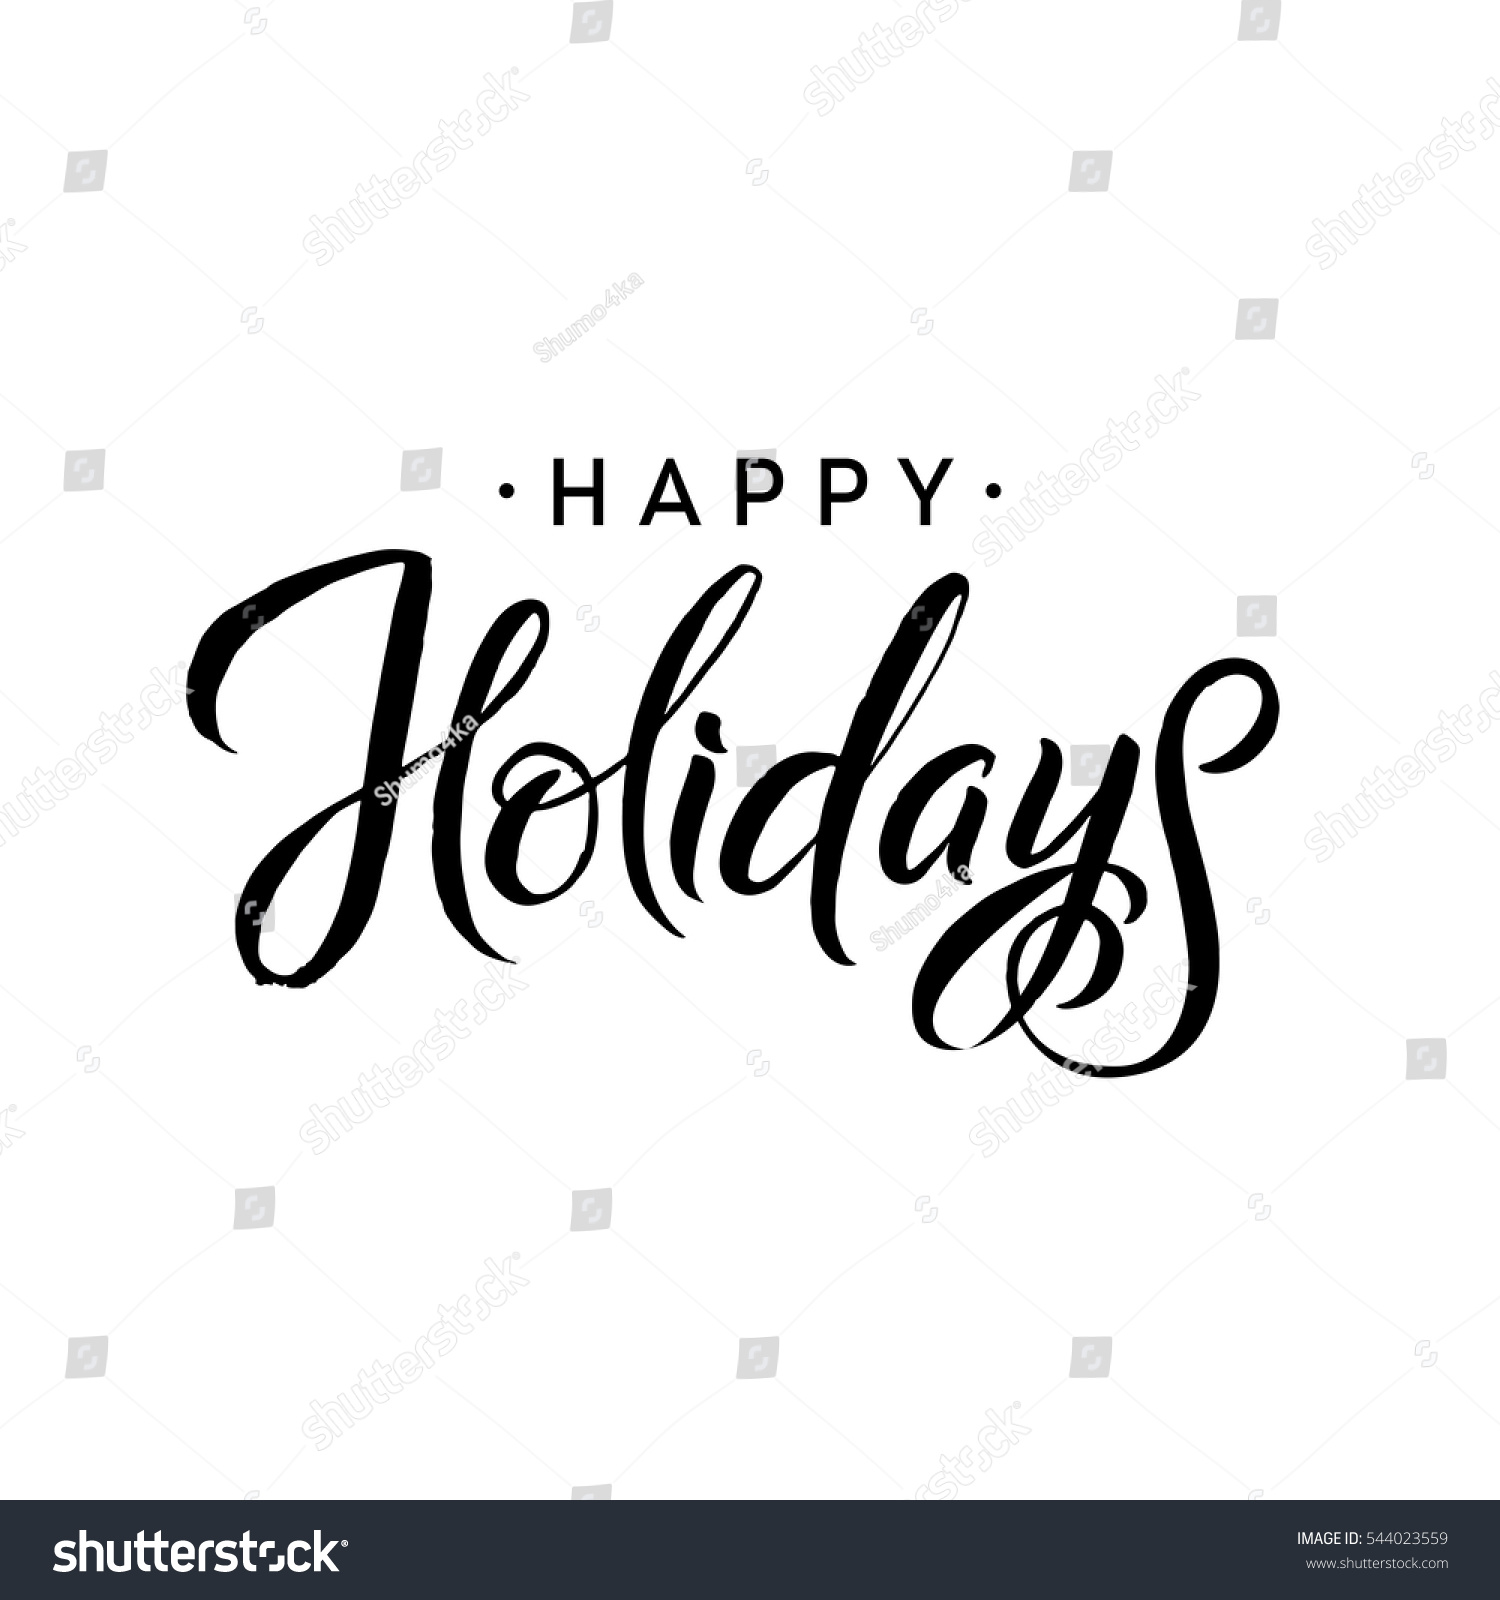 Happy Holidays Merry Christmas Calligraphy Template Stock